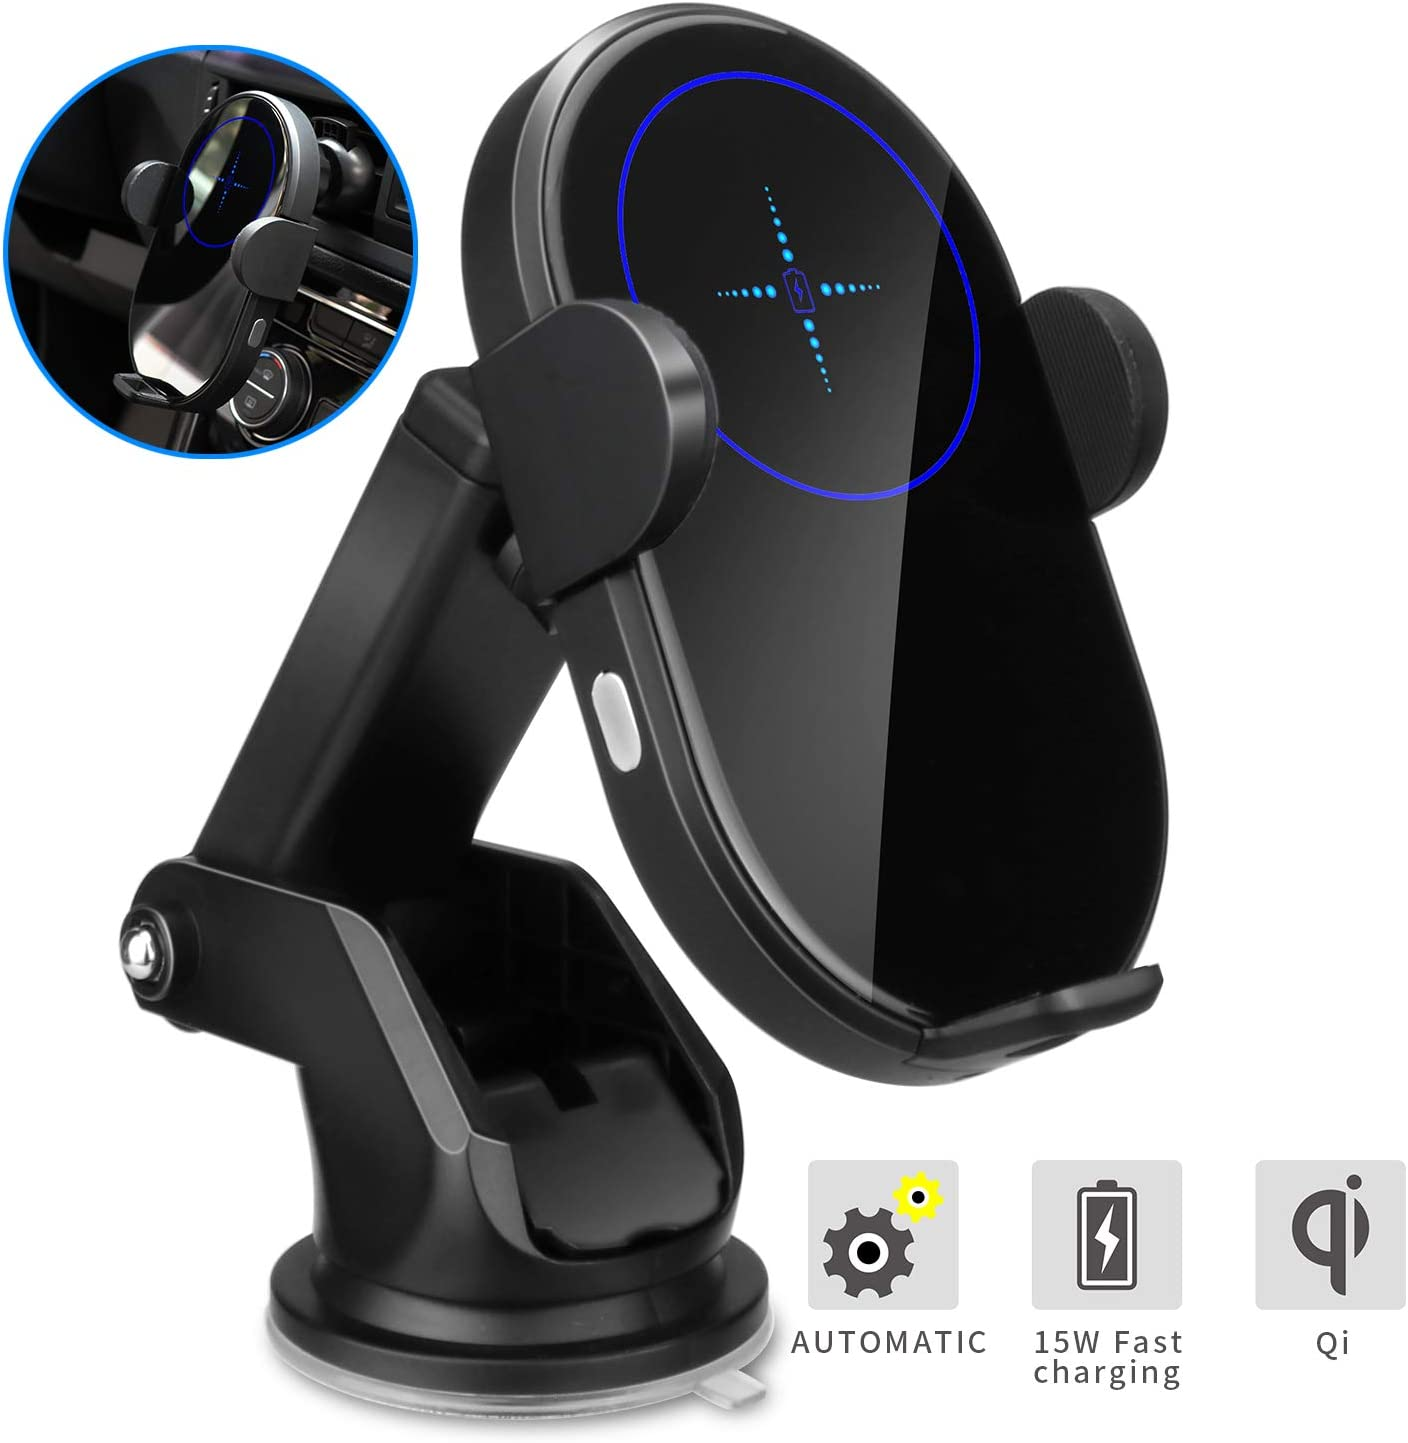 LIEBMAYA Wireless Car Charger,15W Qi Fast Charging Car Mount Charger Auto-Clamping Windshield Dash Air Vent Phone Holder Compatible with iPhone 11Pro//Max//XR//11//X//8 Samsung S10//S10+//S9//S9+//S8//S8+